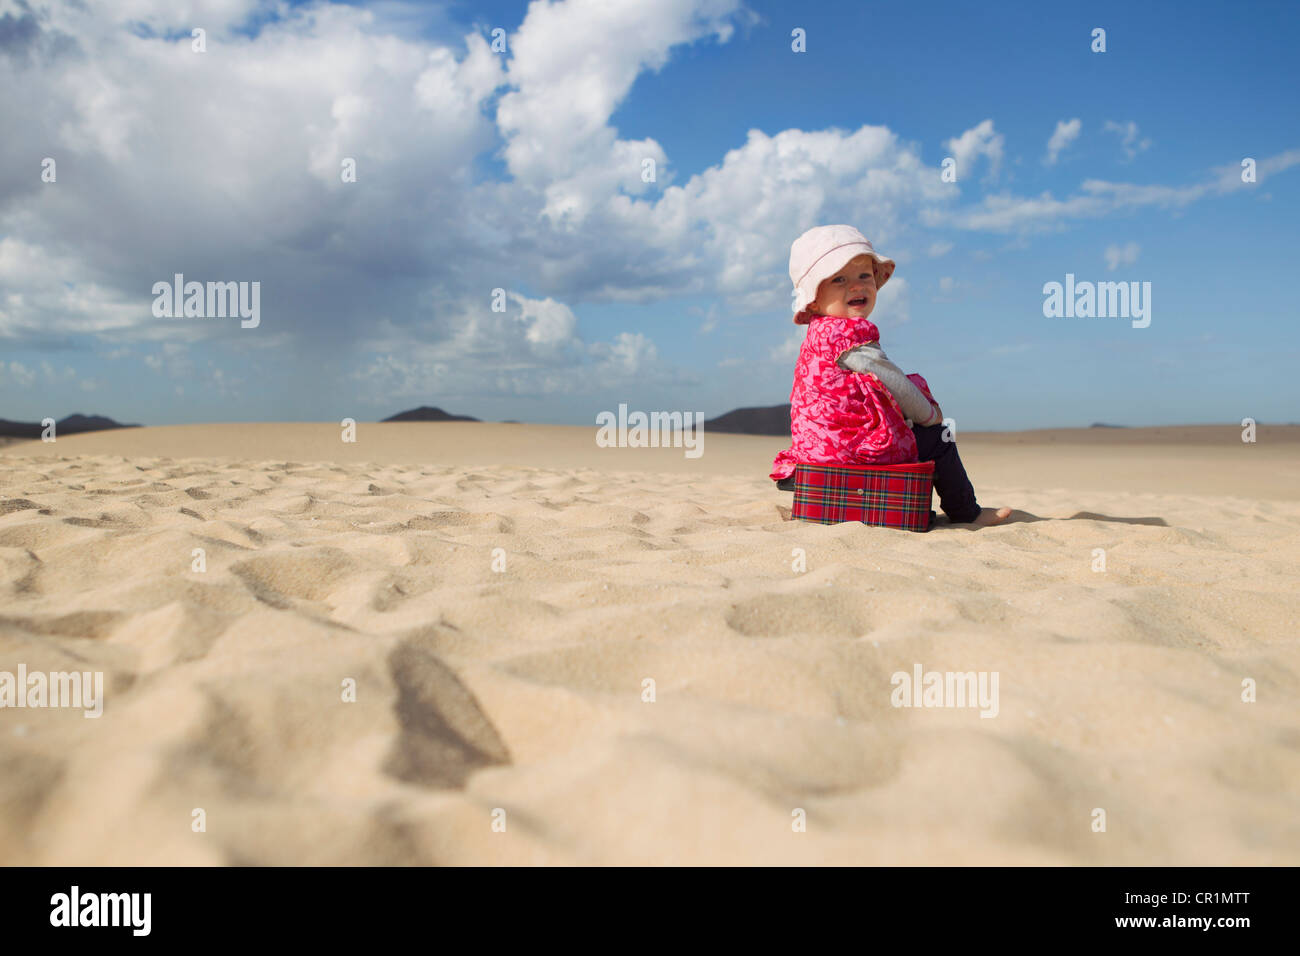 Toddler sitting on suitcase on beach - Stock Image